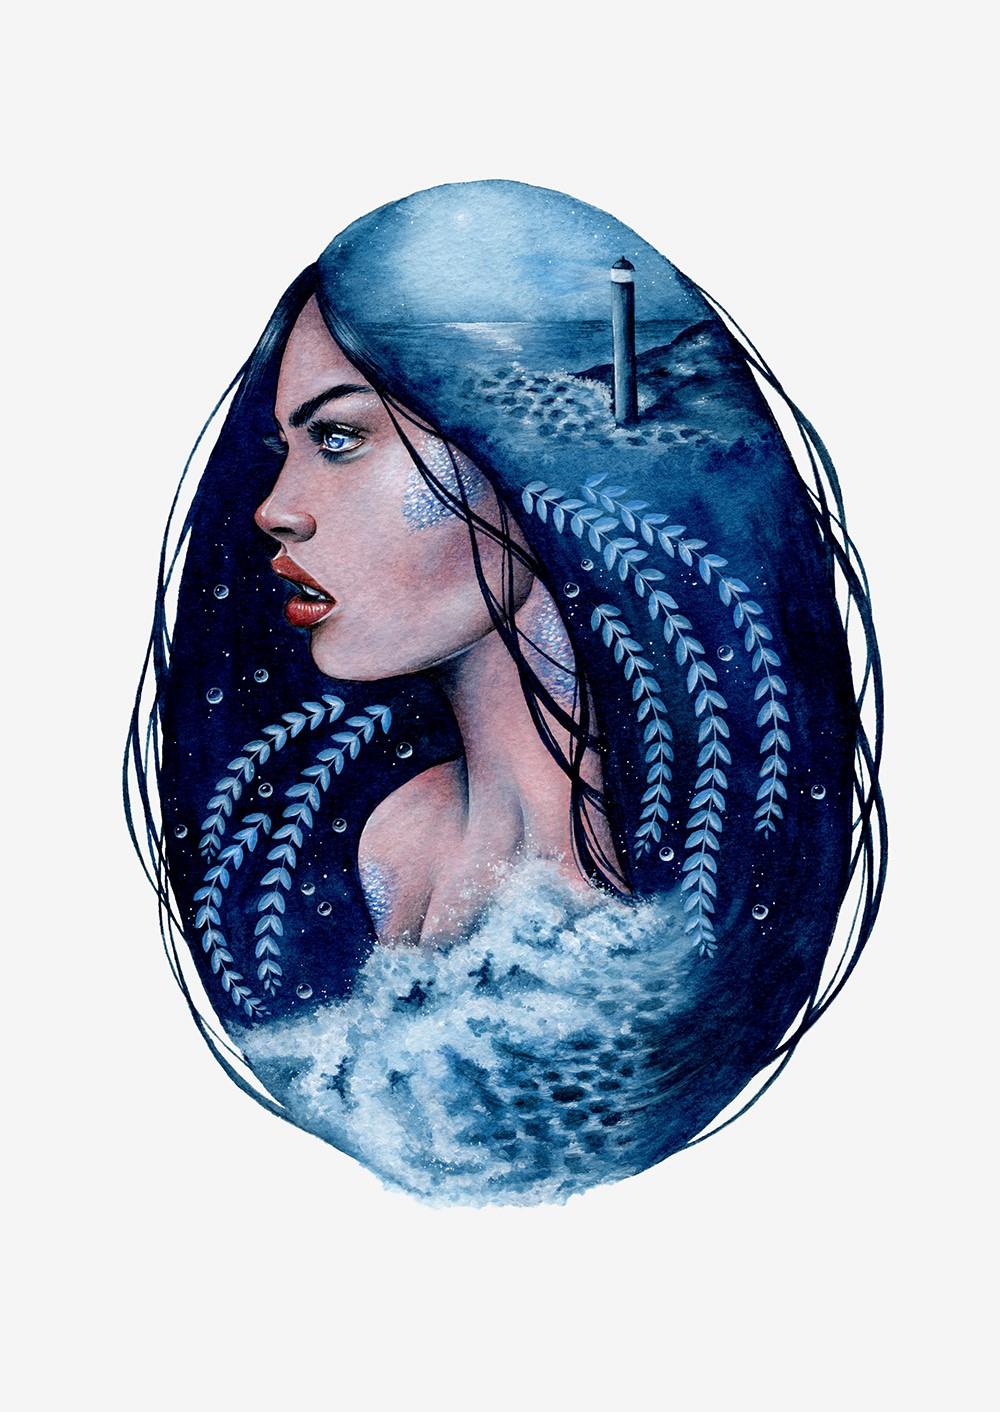 Siren - A Double Exposure Effect Illustration